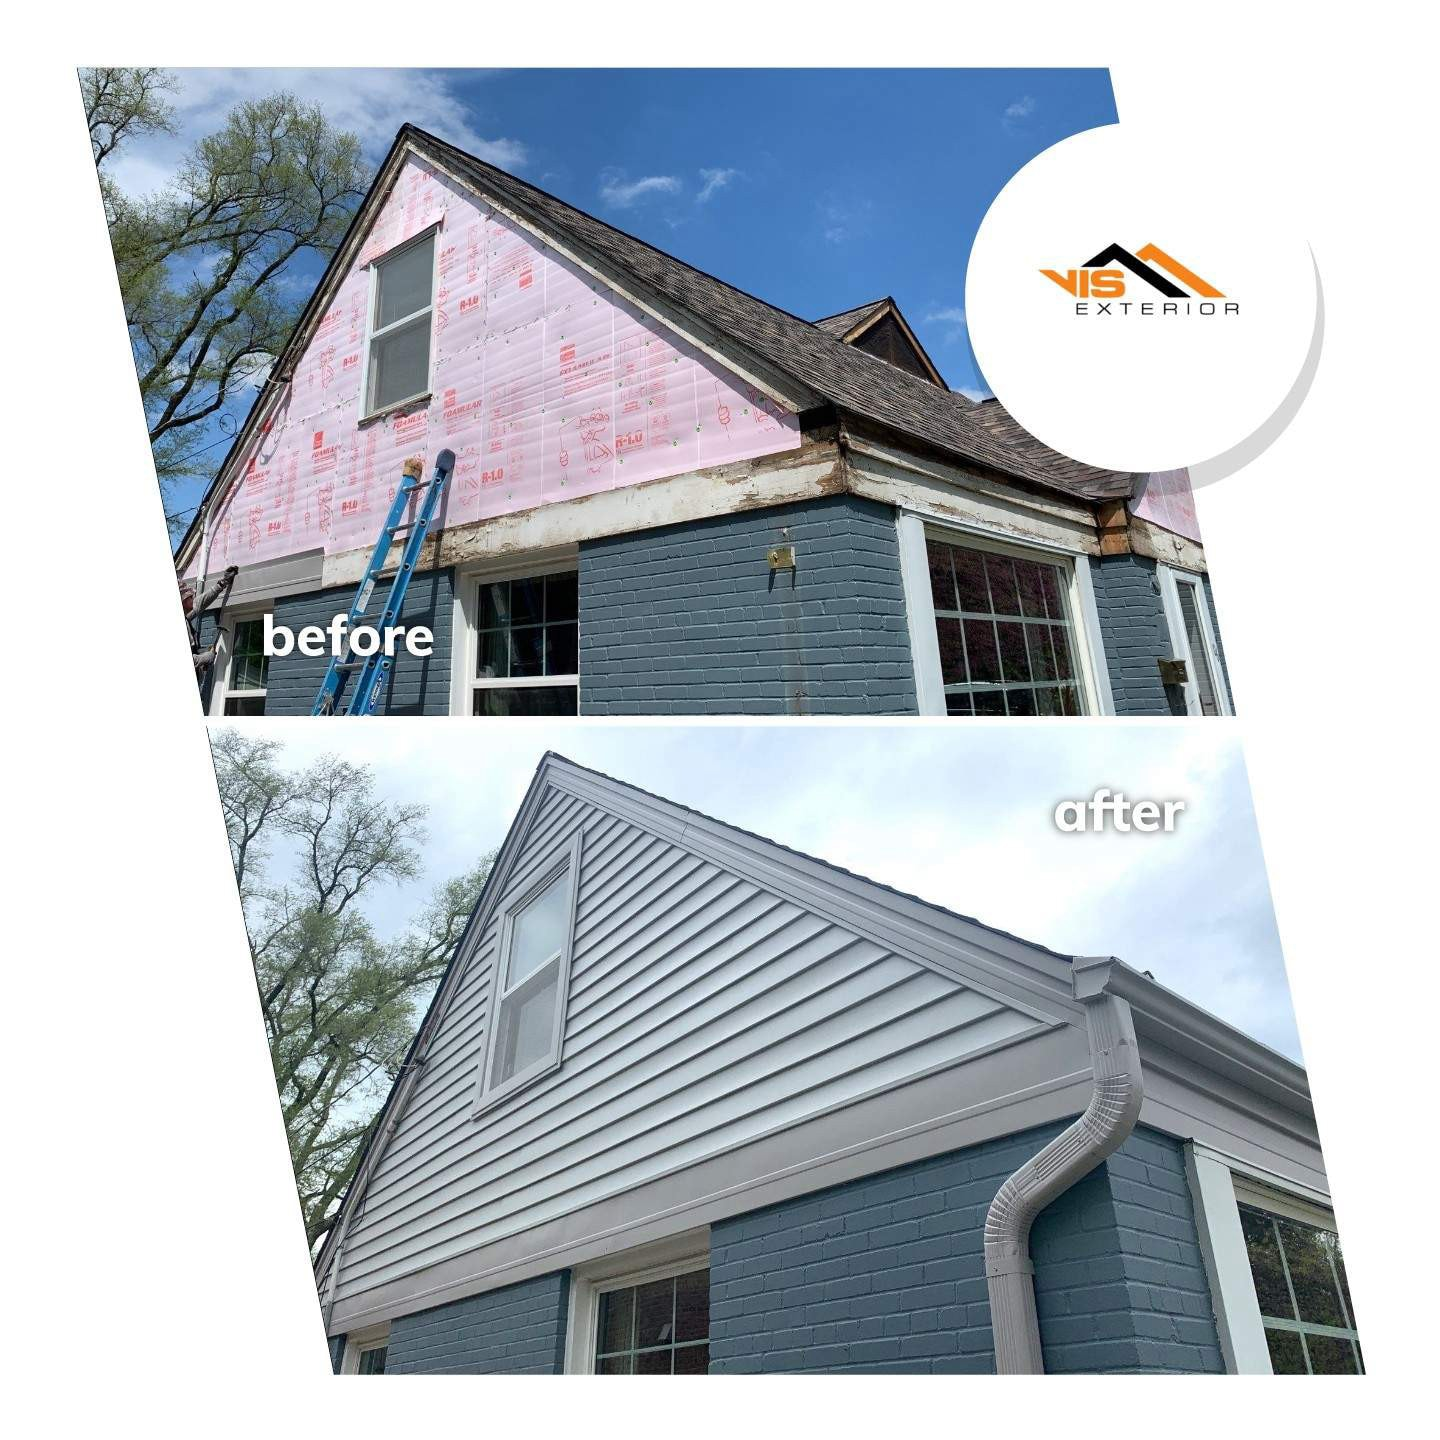 Vinyl siding installation and shingle roof replacement in Clarendon Hills before after project photo